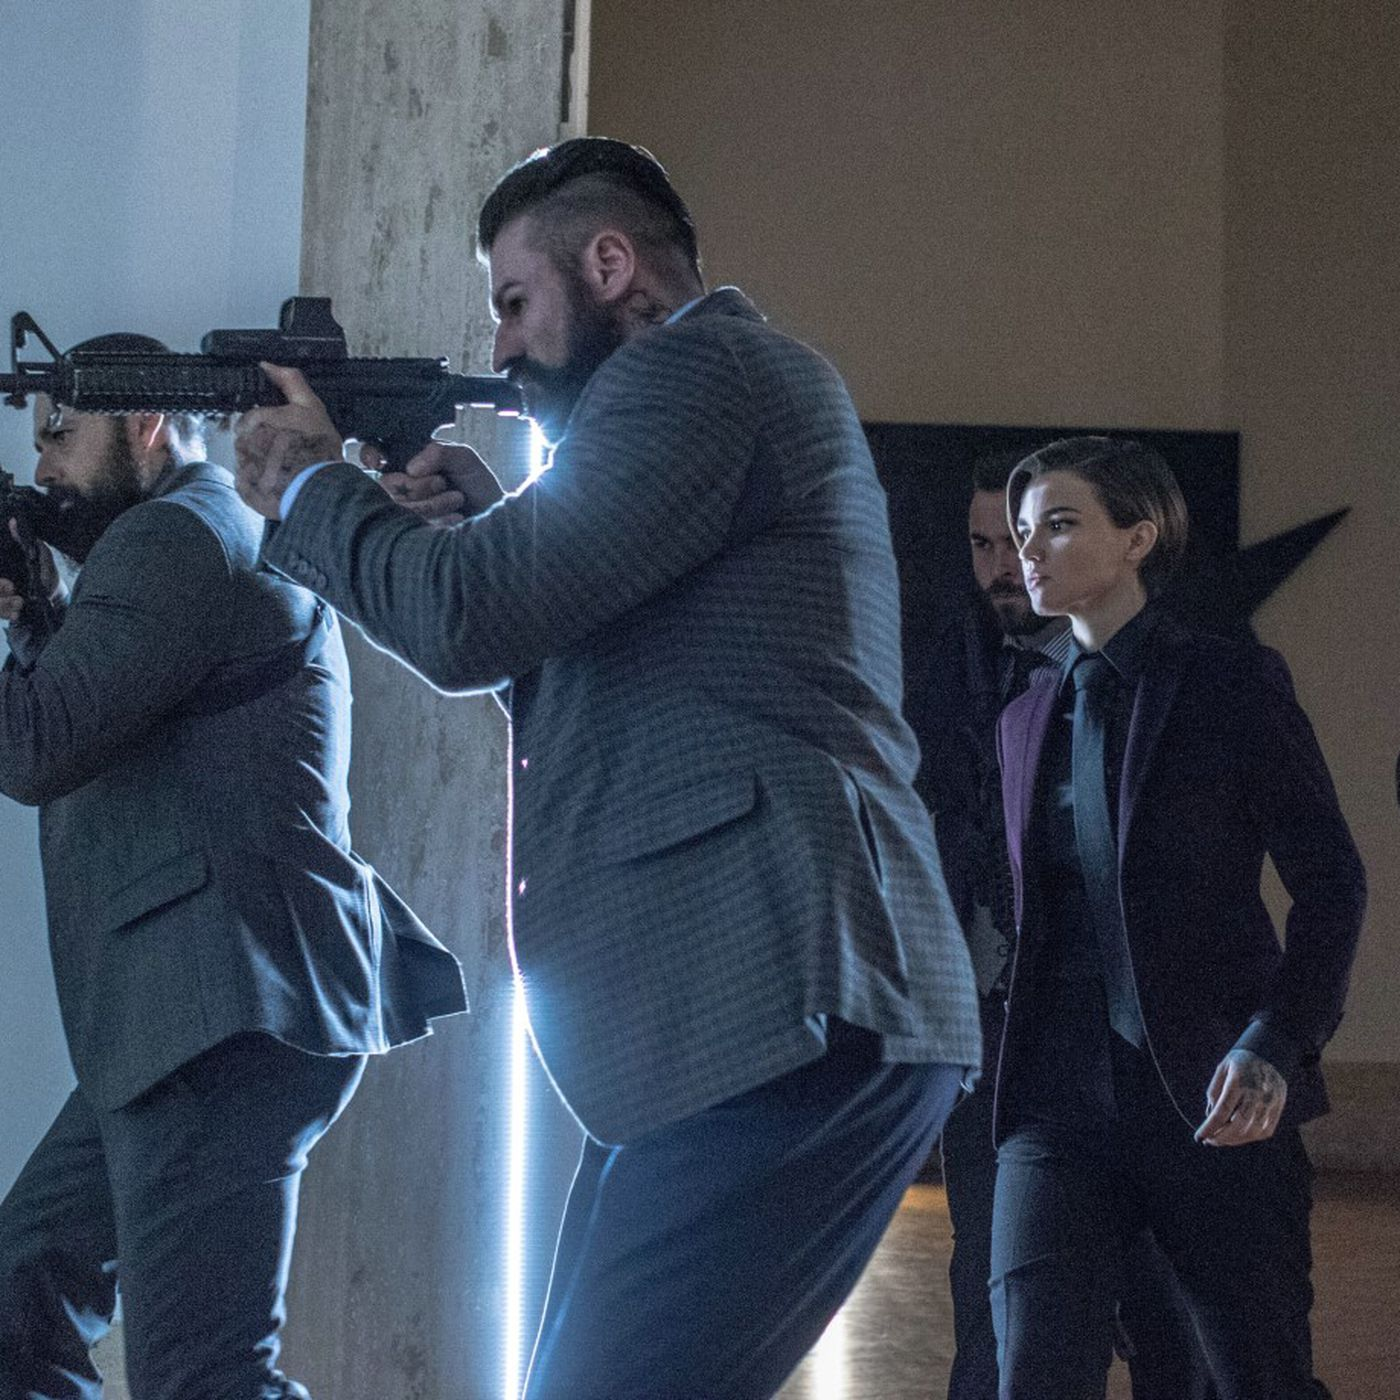 John Wick: Chapter 2 has officially been confirmed as